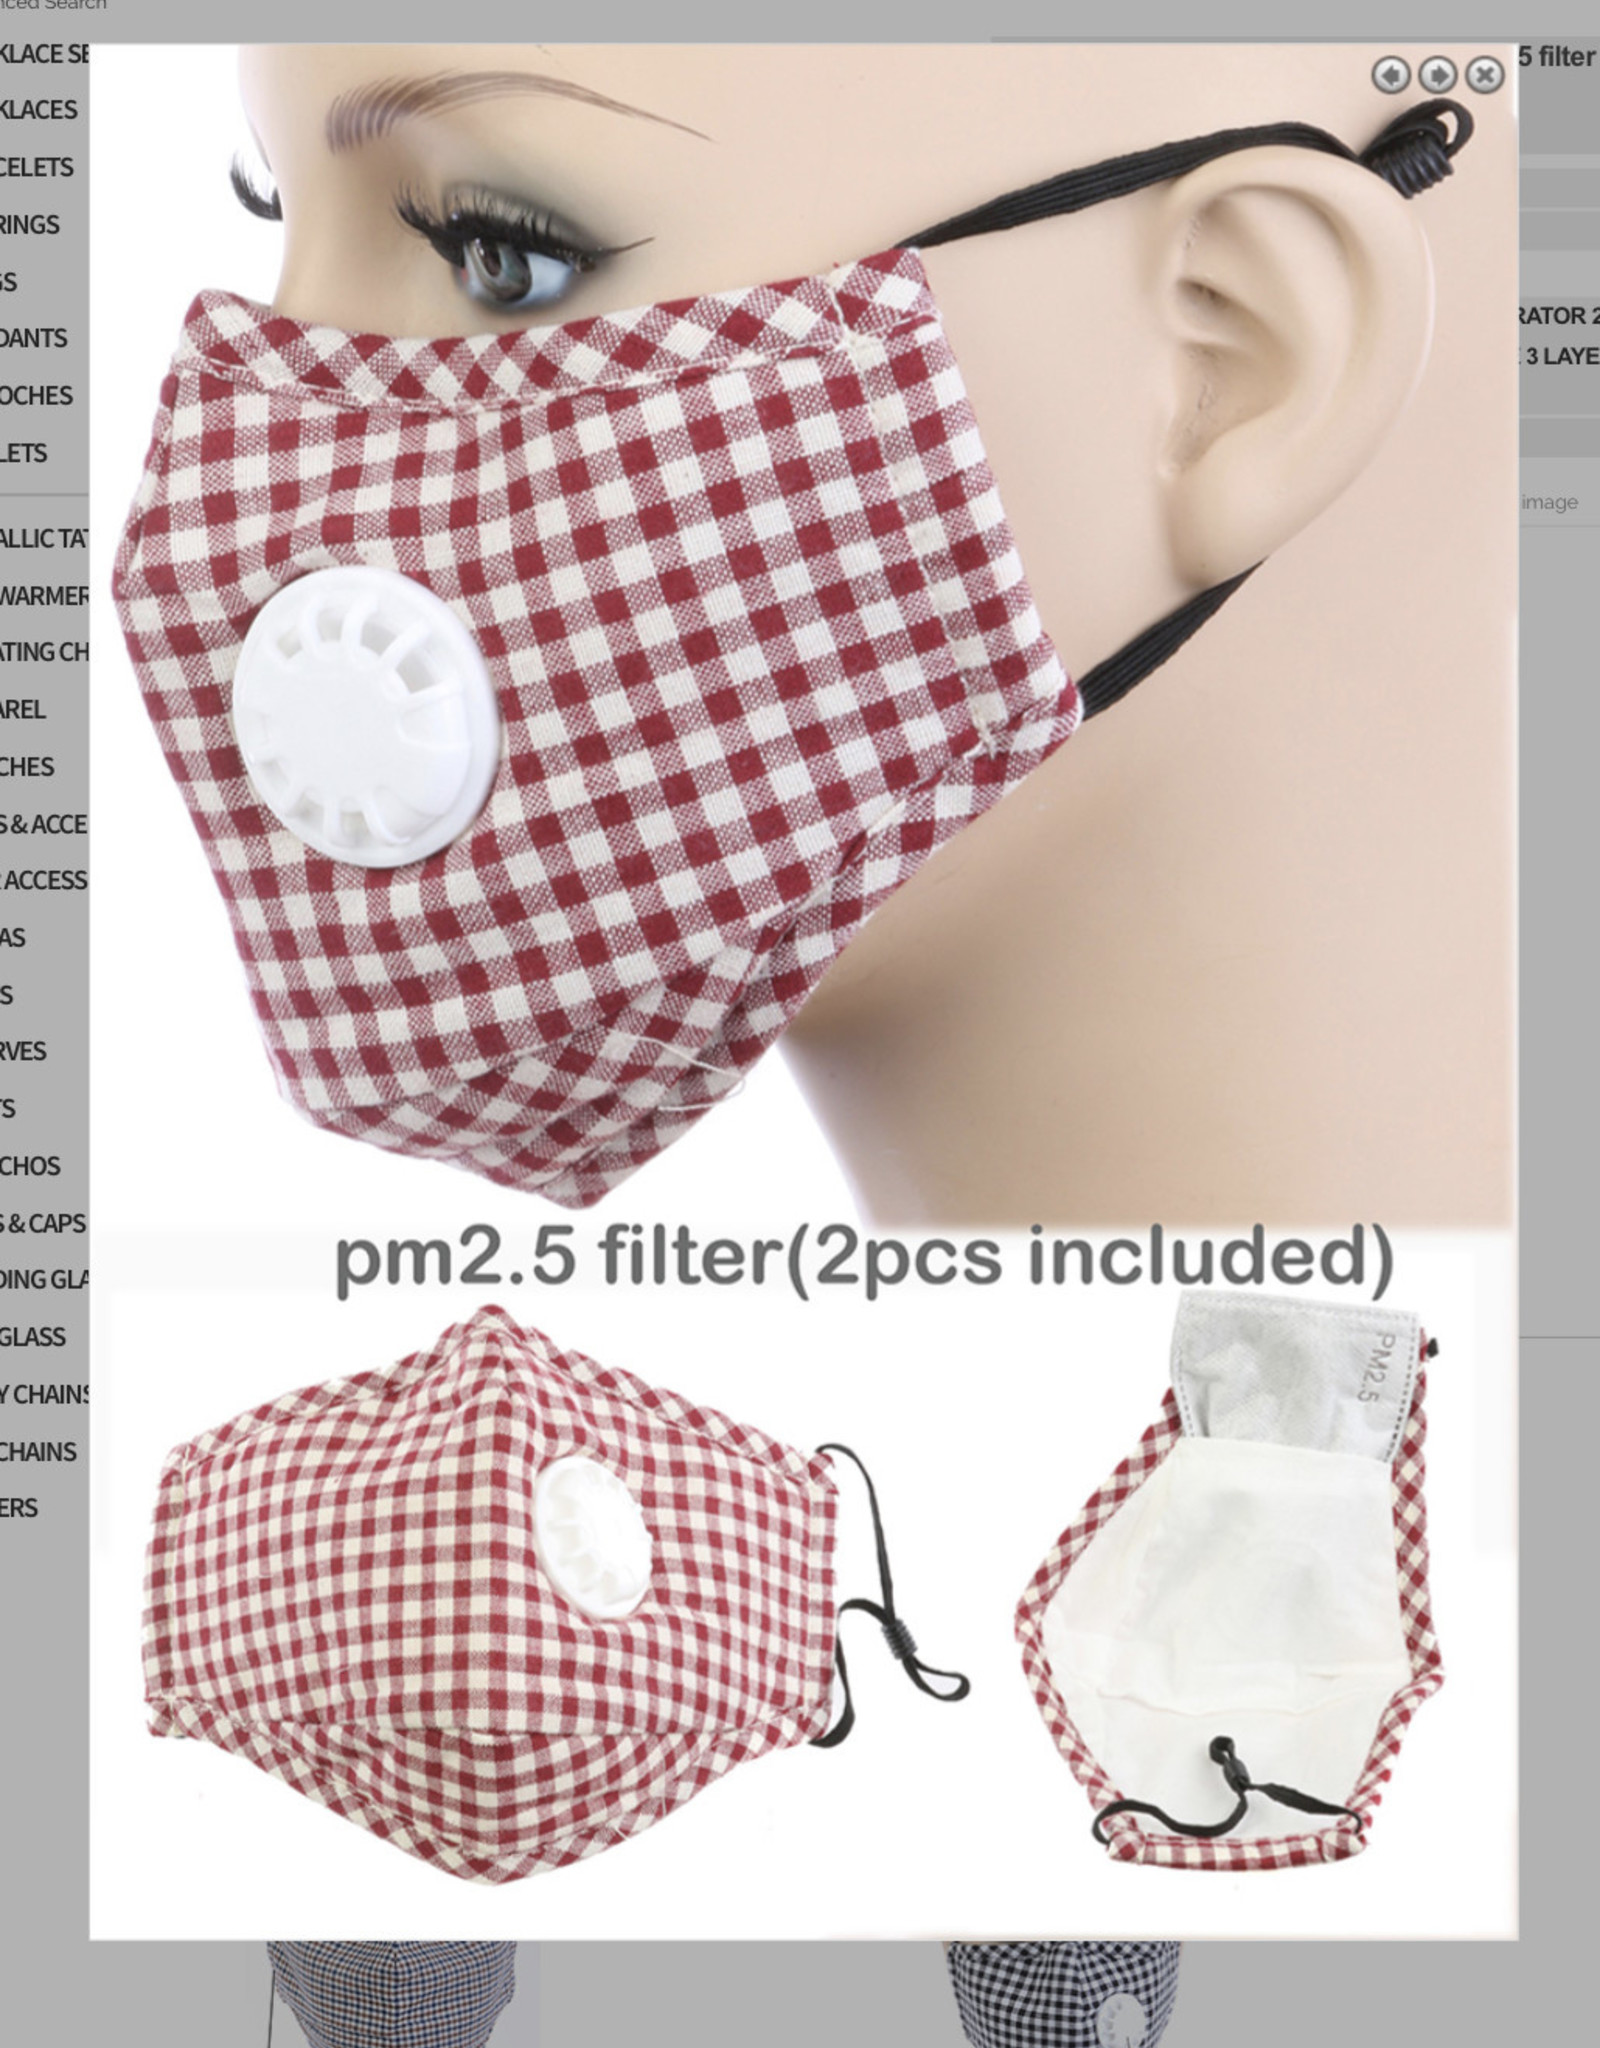 FACE MASK COTTON EZ BREATHE RESPIRATOR W/ FILTER POCKET RED CHECK